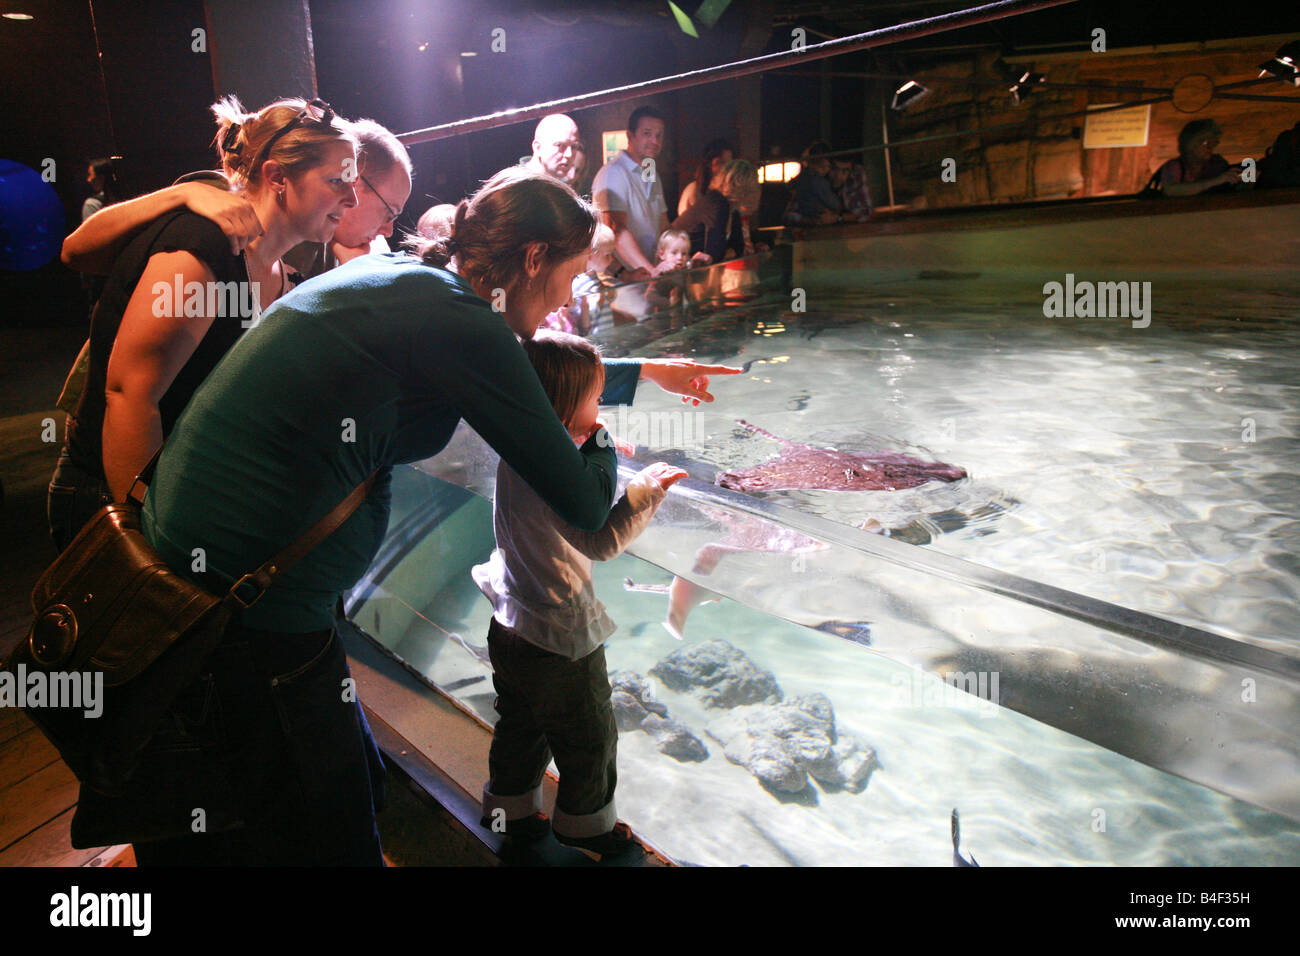 Tourists watch giant rays in glass fish tank at London Aquarium a popular visitor landmark attraction UK - Stock Image